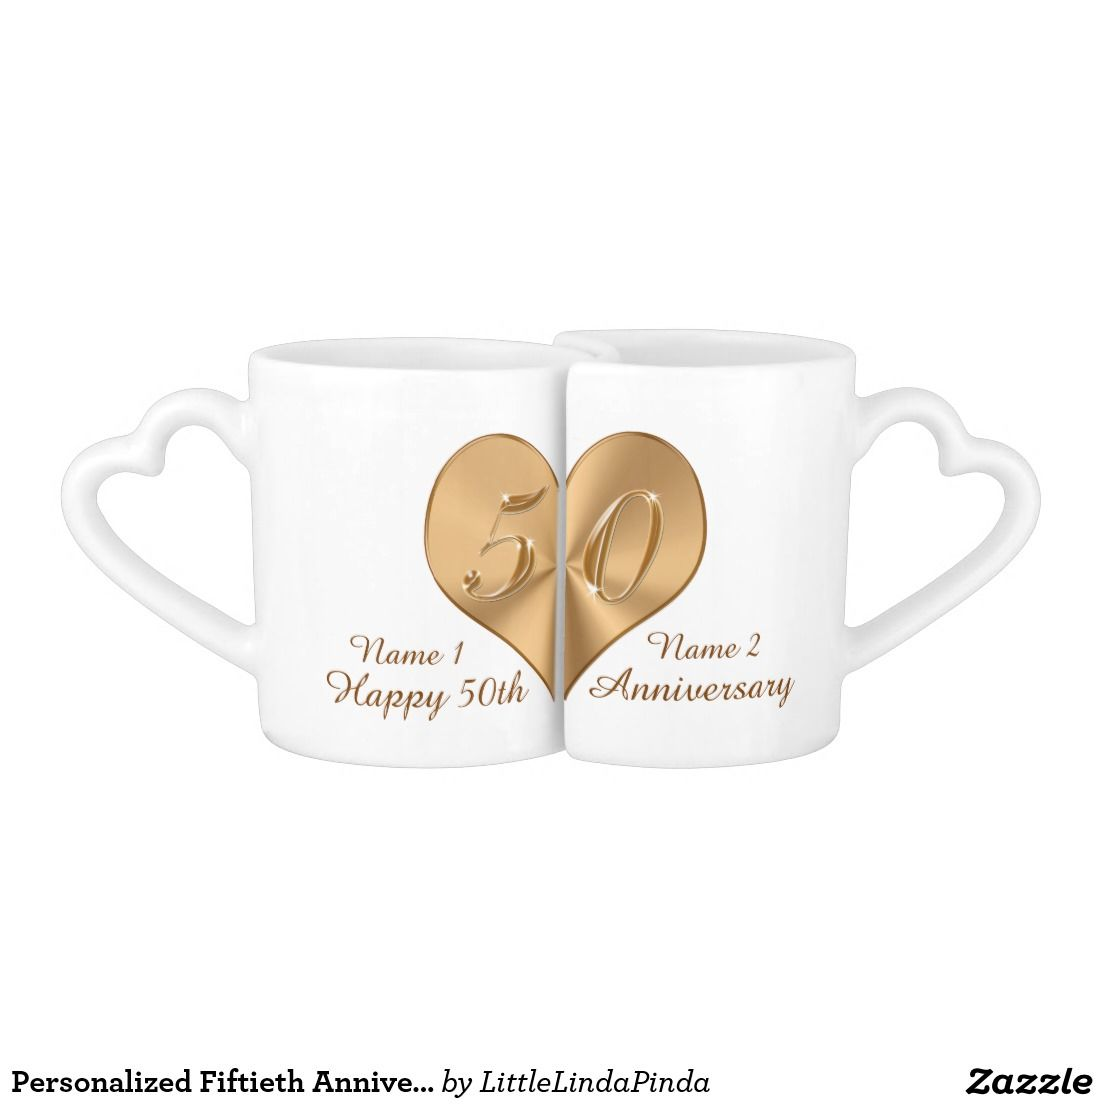 Personalized Fiftieth Anniversary Gift Lovers Mugs Zazzle Com In 2021 50th Anniversary Gifts Fiftieth Anniversary Gifts Anniversary Gift For Friends